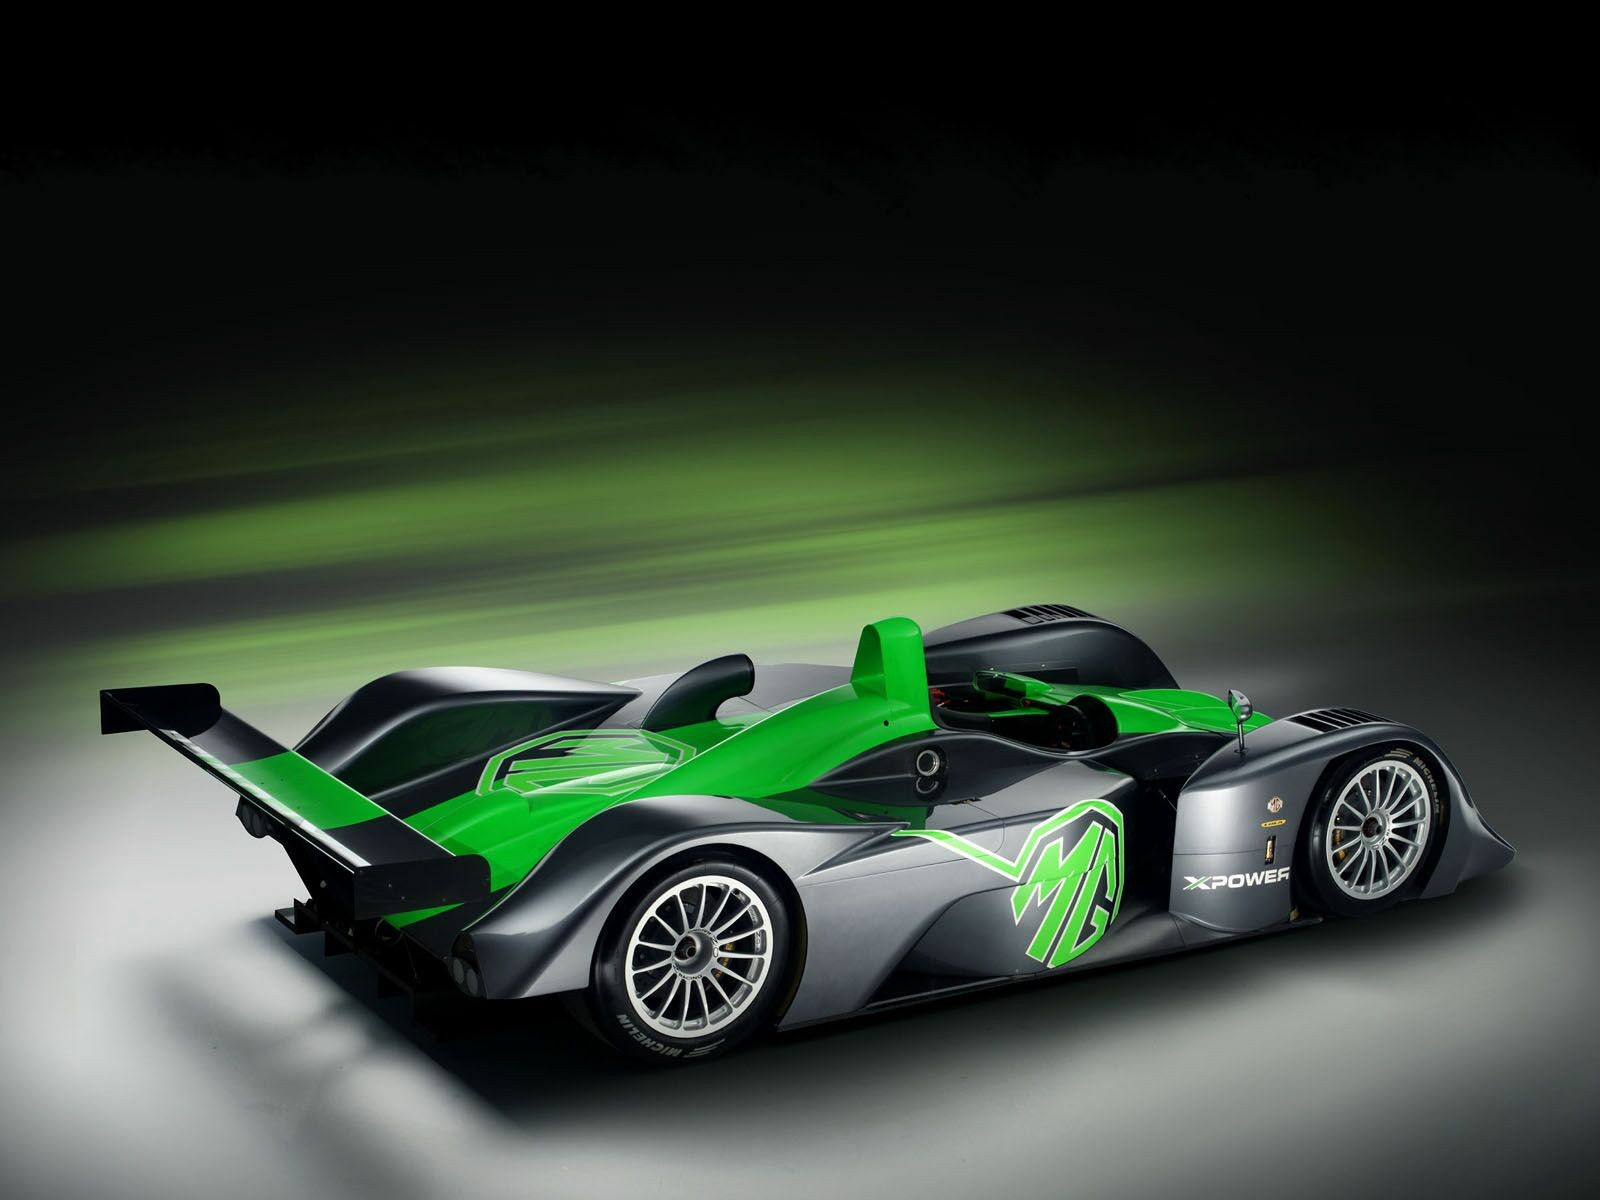 Xpowers Racing Car Hd Wallpaper Car Wallpapers